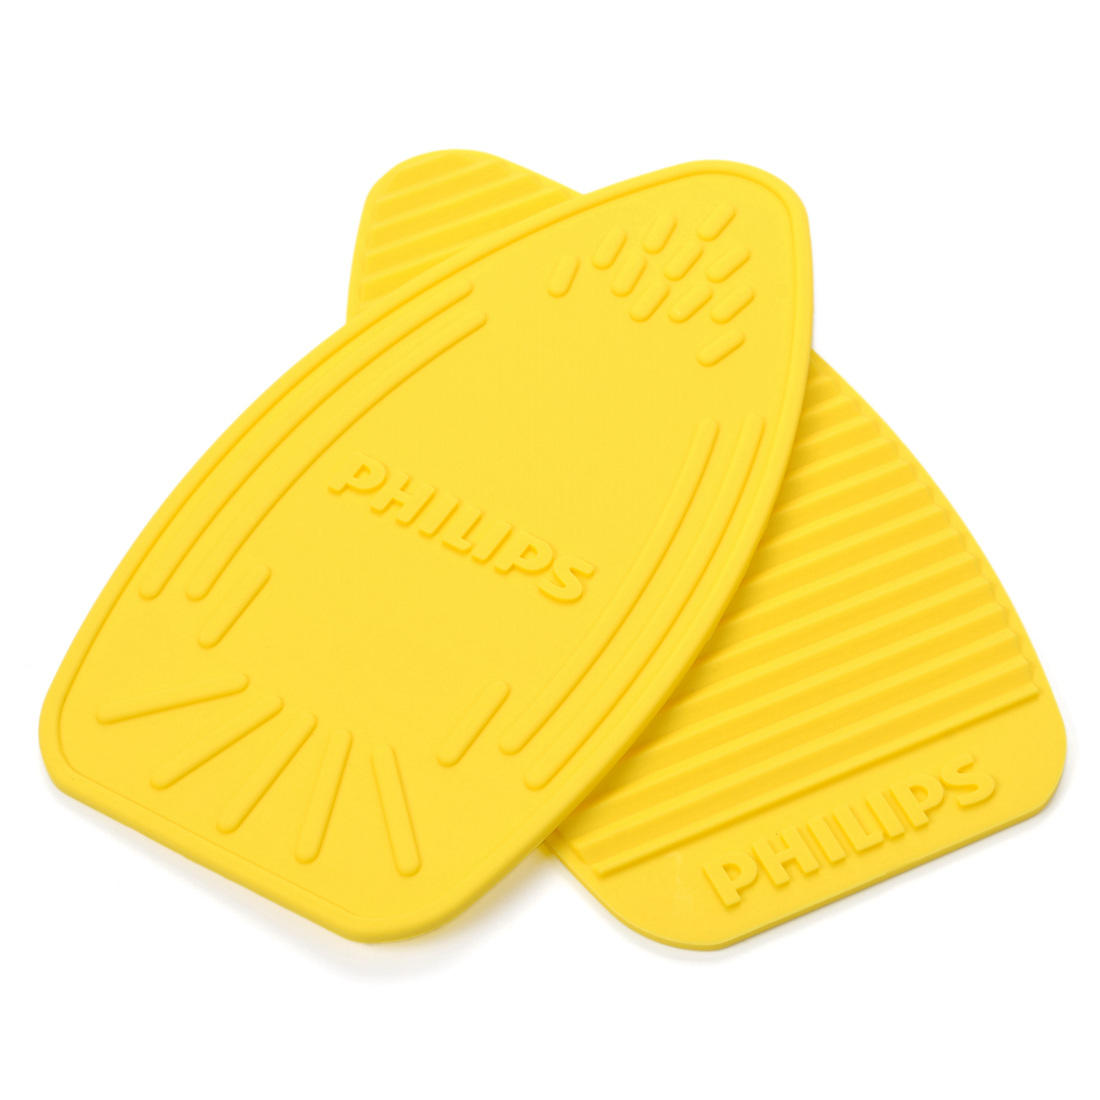 Anti-Slip Waterproof Silicone Iron mat flatiron cushion sadiron pad electric iron mat